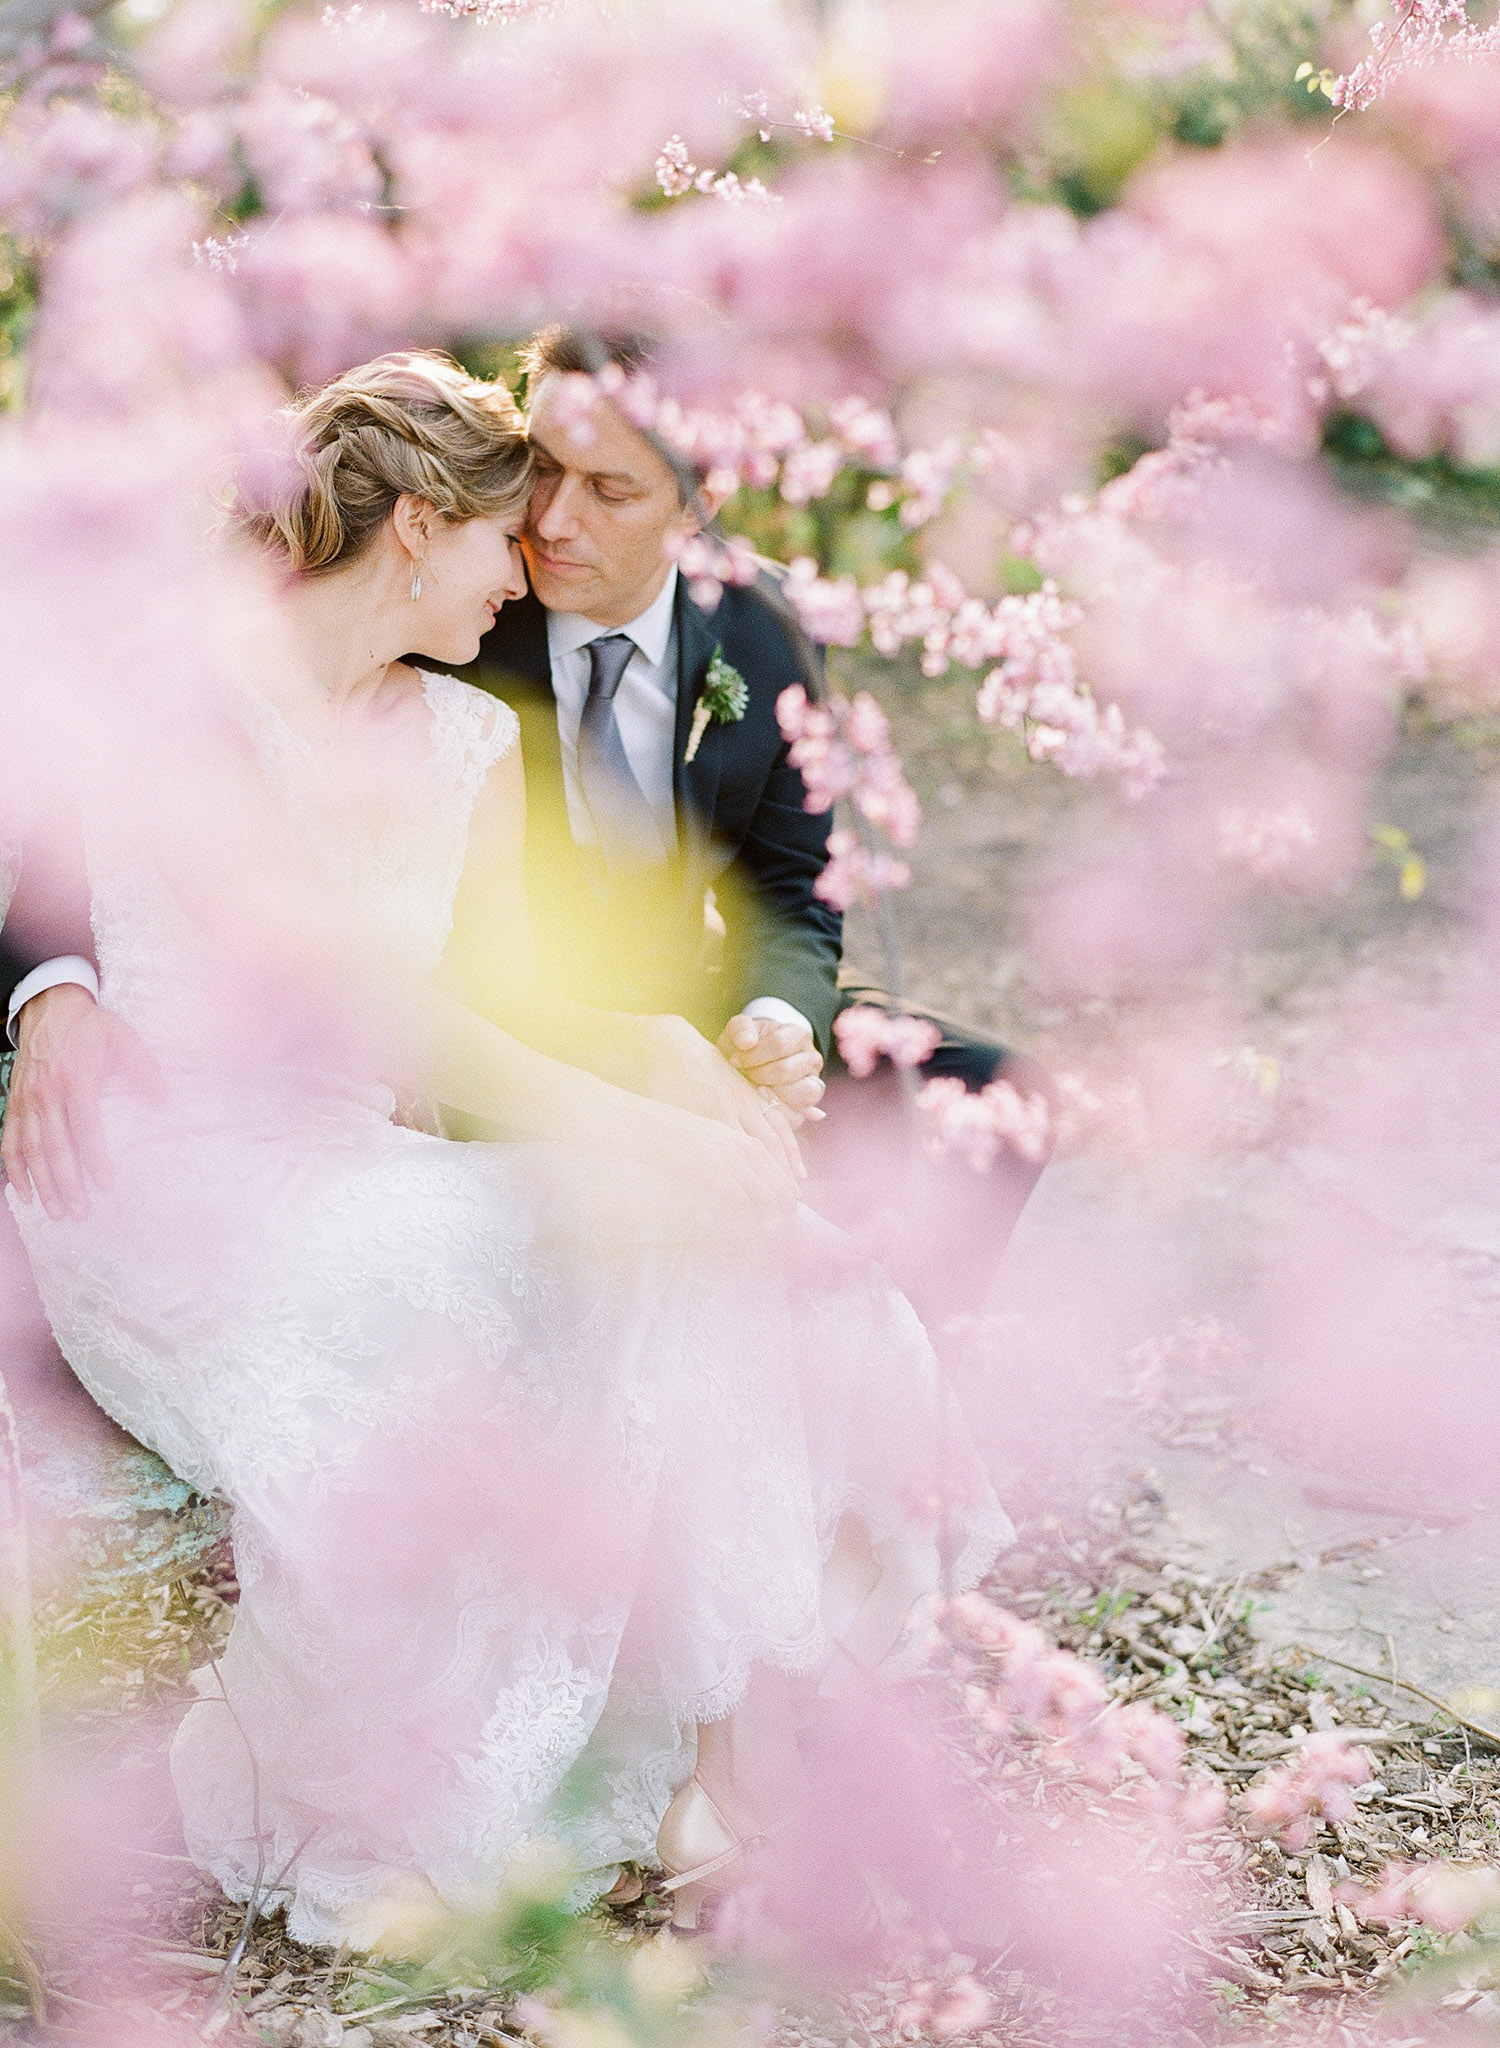 bride and groom kiss through the pink springtime blooms at this springtime wedding at Northwind Perennial Garden - a beautiful wisconsin wedding venue - while Destination wedding photographer Lexia Frank Photographs this wedding on film